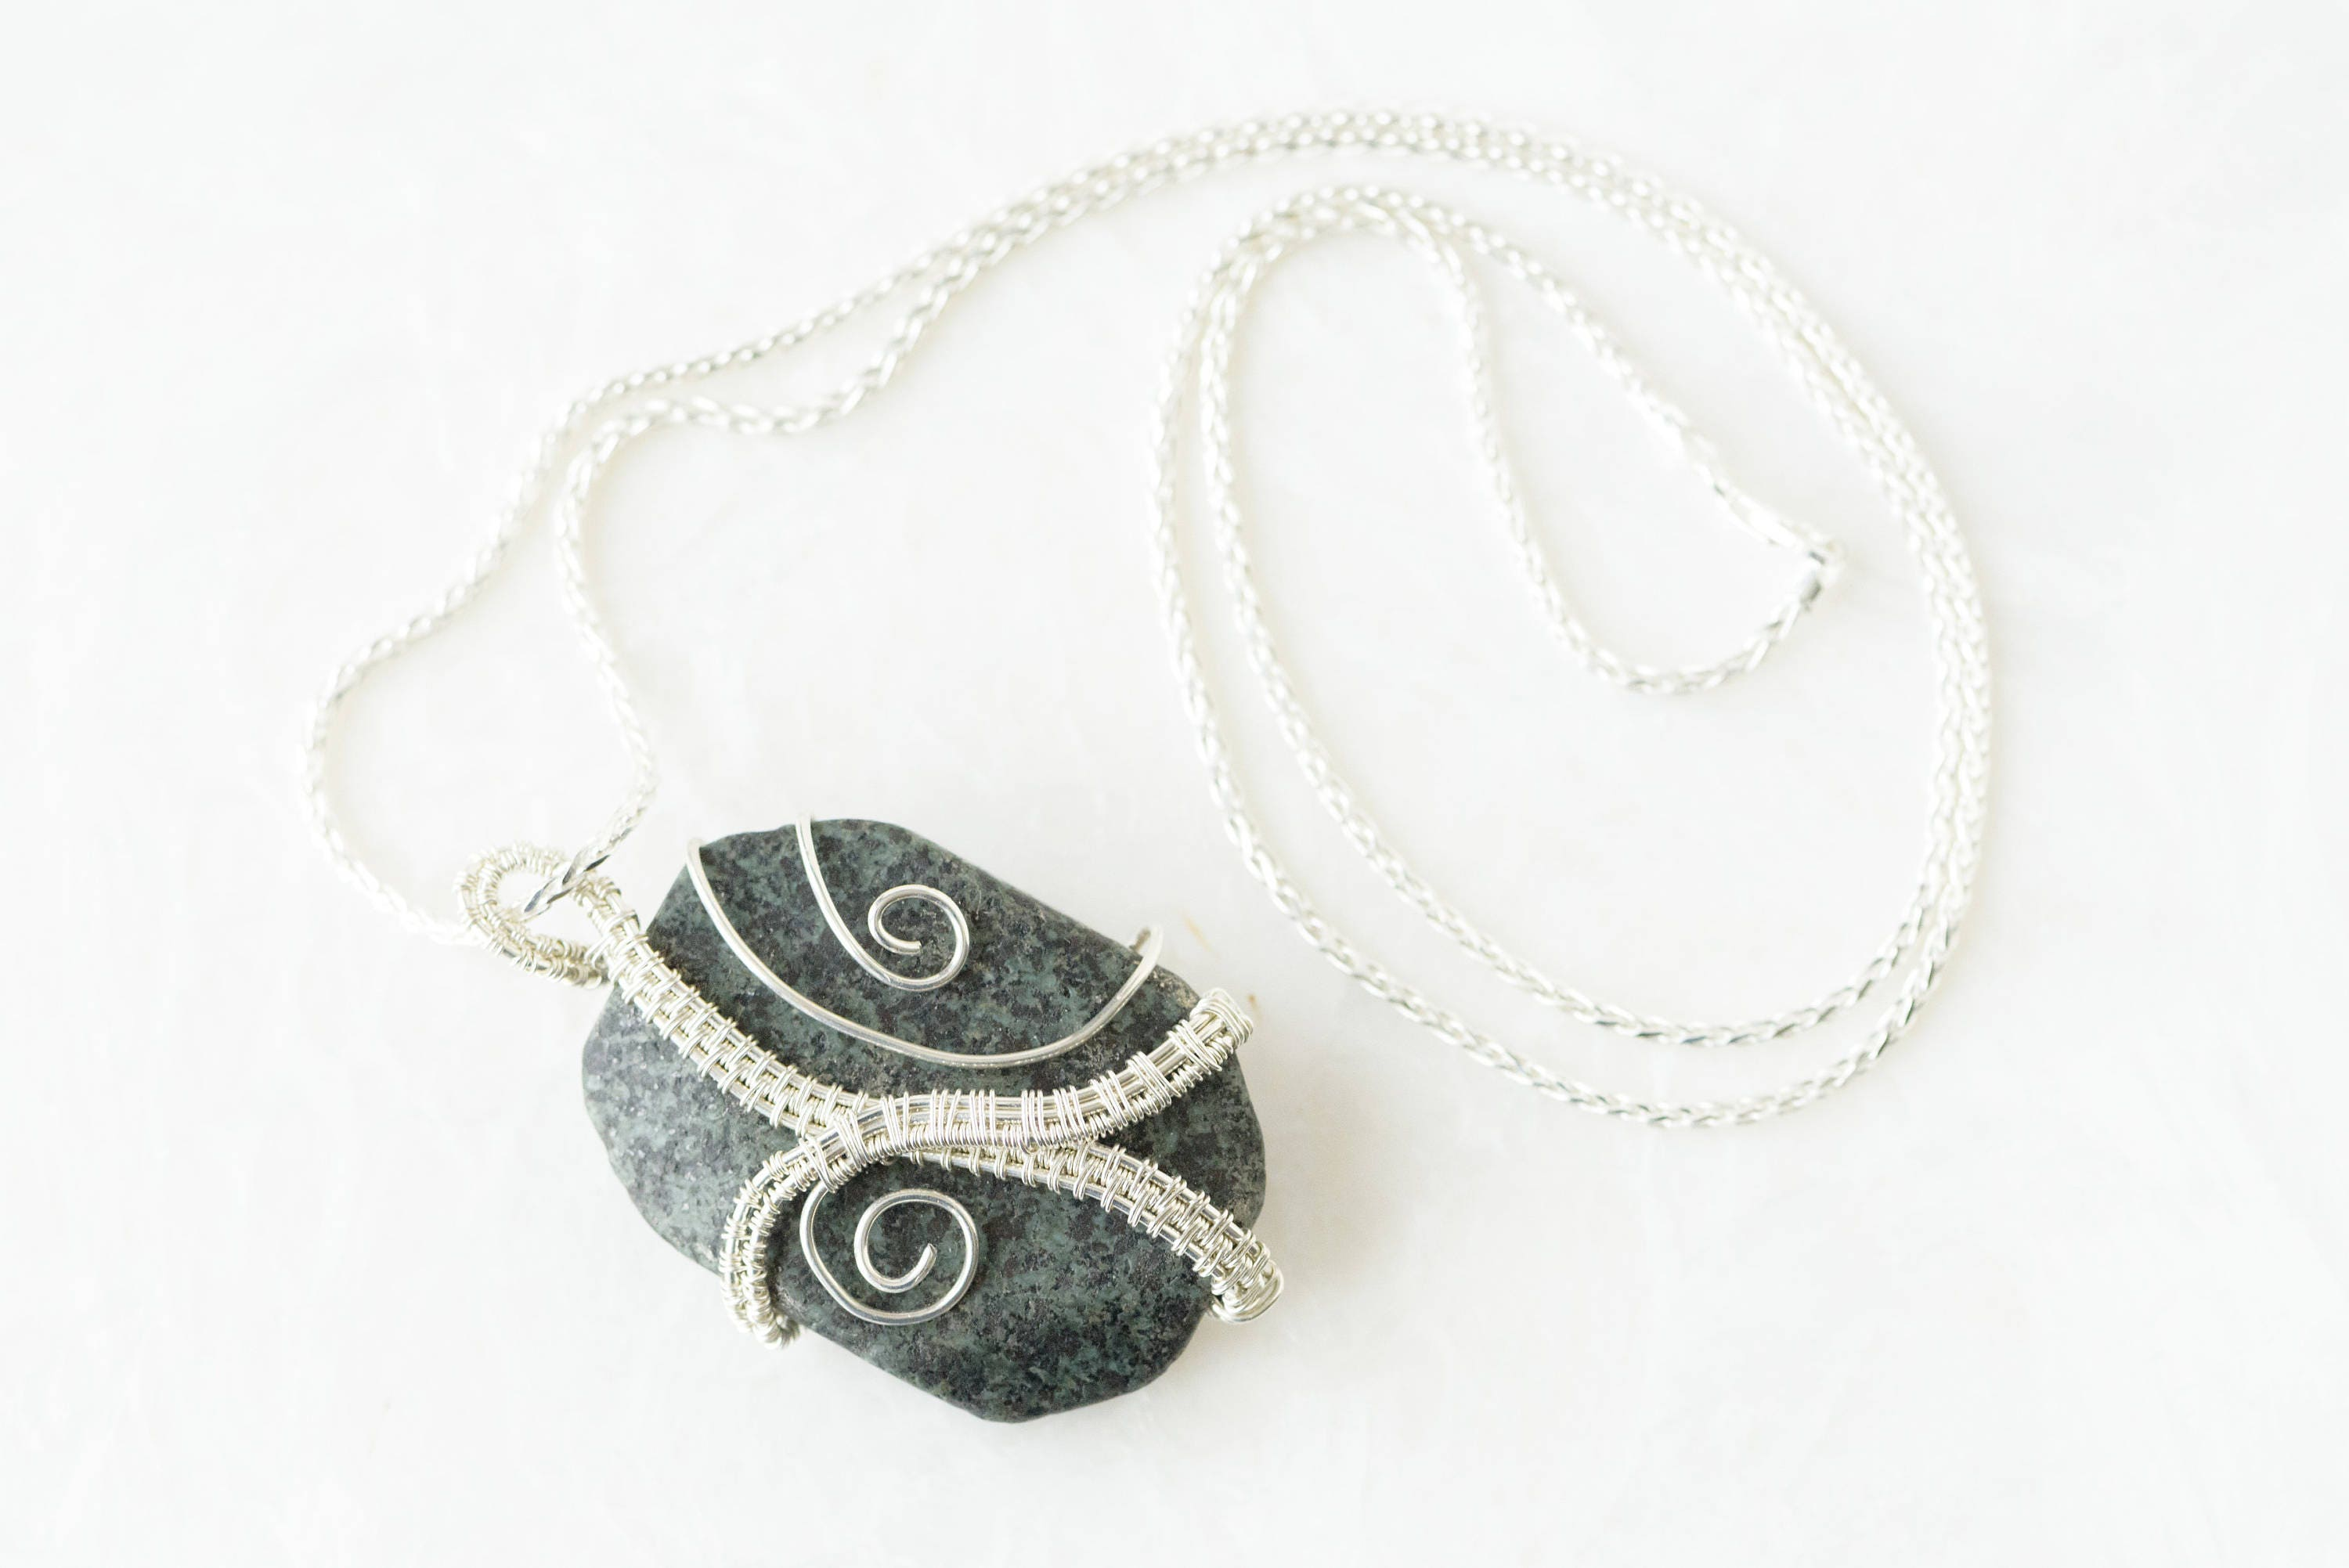 Russian Serpentine necklace wire wrapped with Sterling Silver